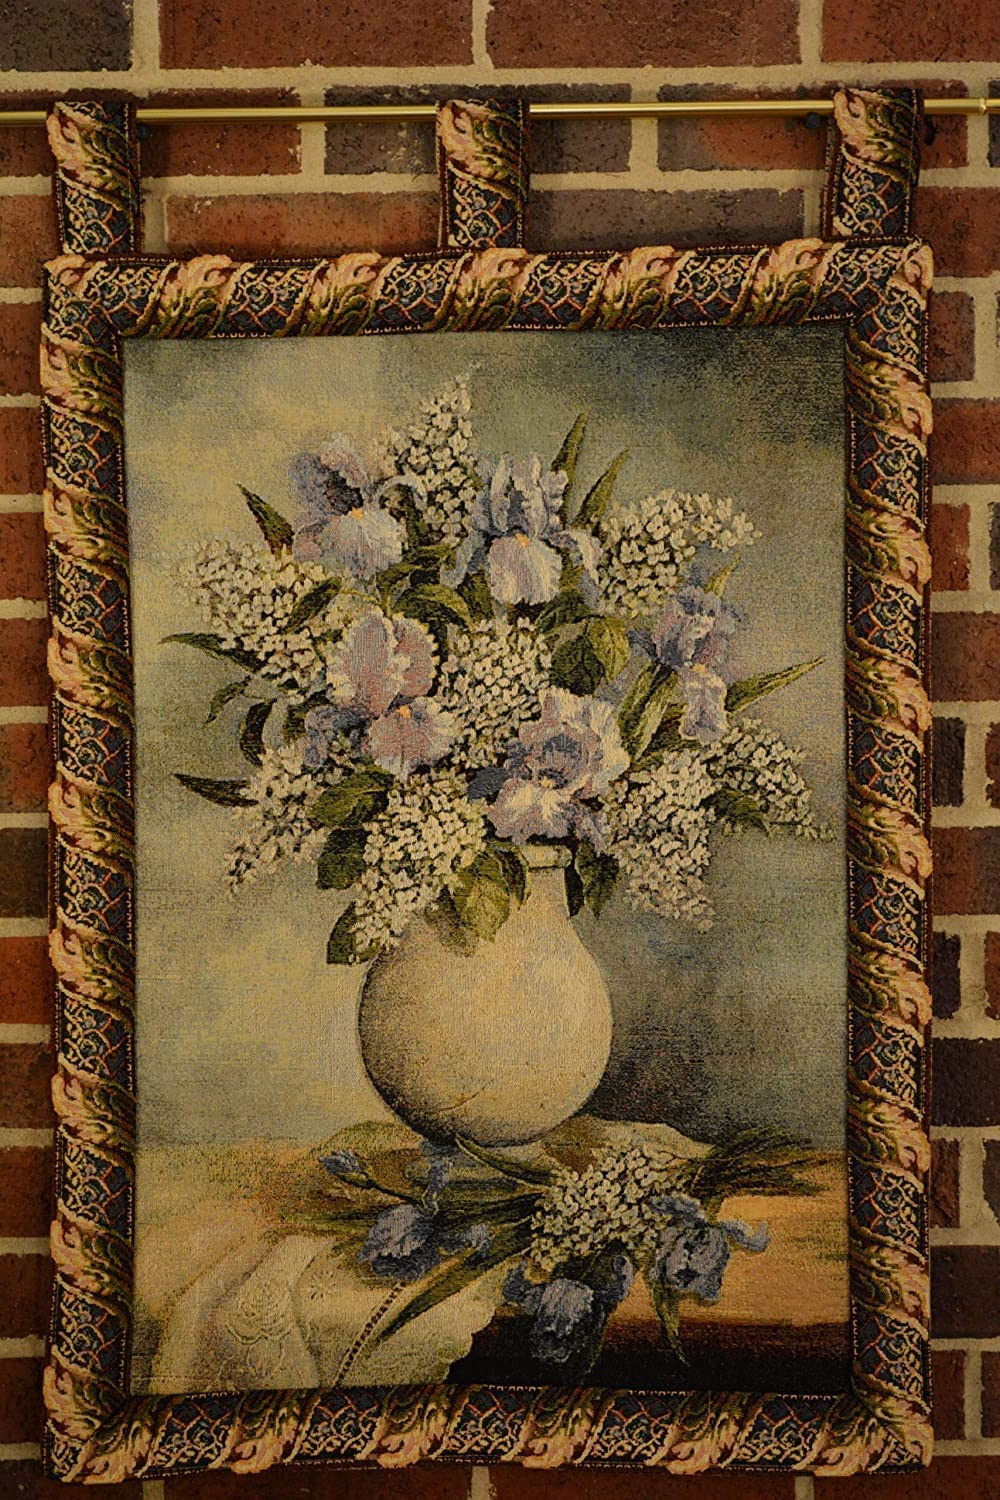 Blended Fabric Faraway Longing Wall Hangings Intended For Most Up To Date Tache 27 X 20 Inch Traditional Styled Country Rustic Floral Captured Wildflowers Tapestry Wall Hanging Art Home Decor Decoration With/hanging Loops (View 9 of 20)